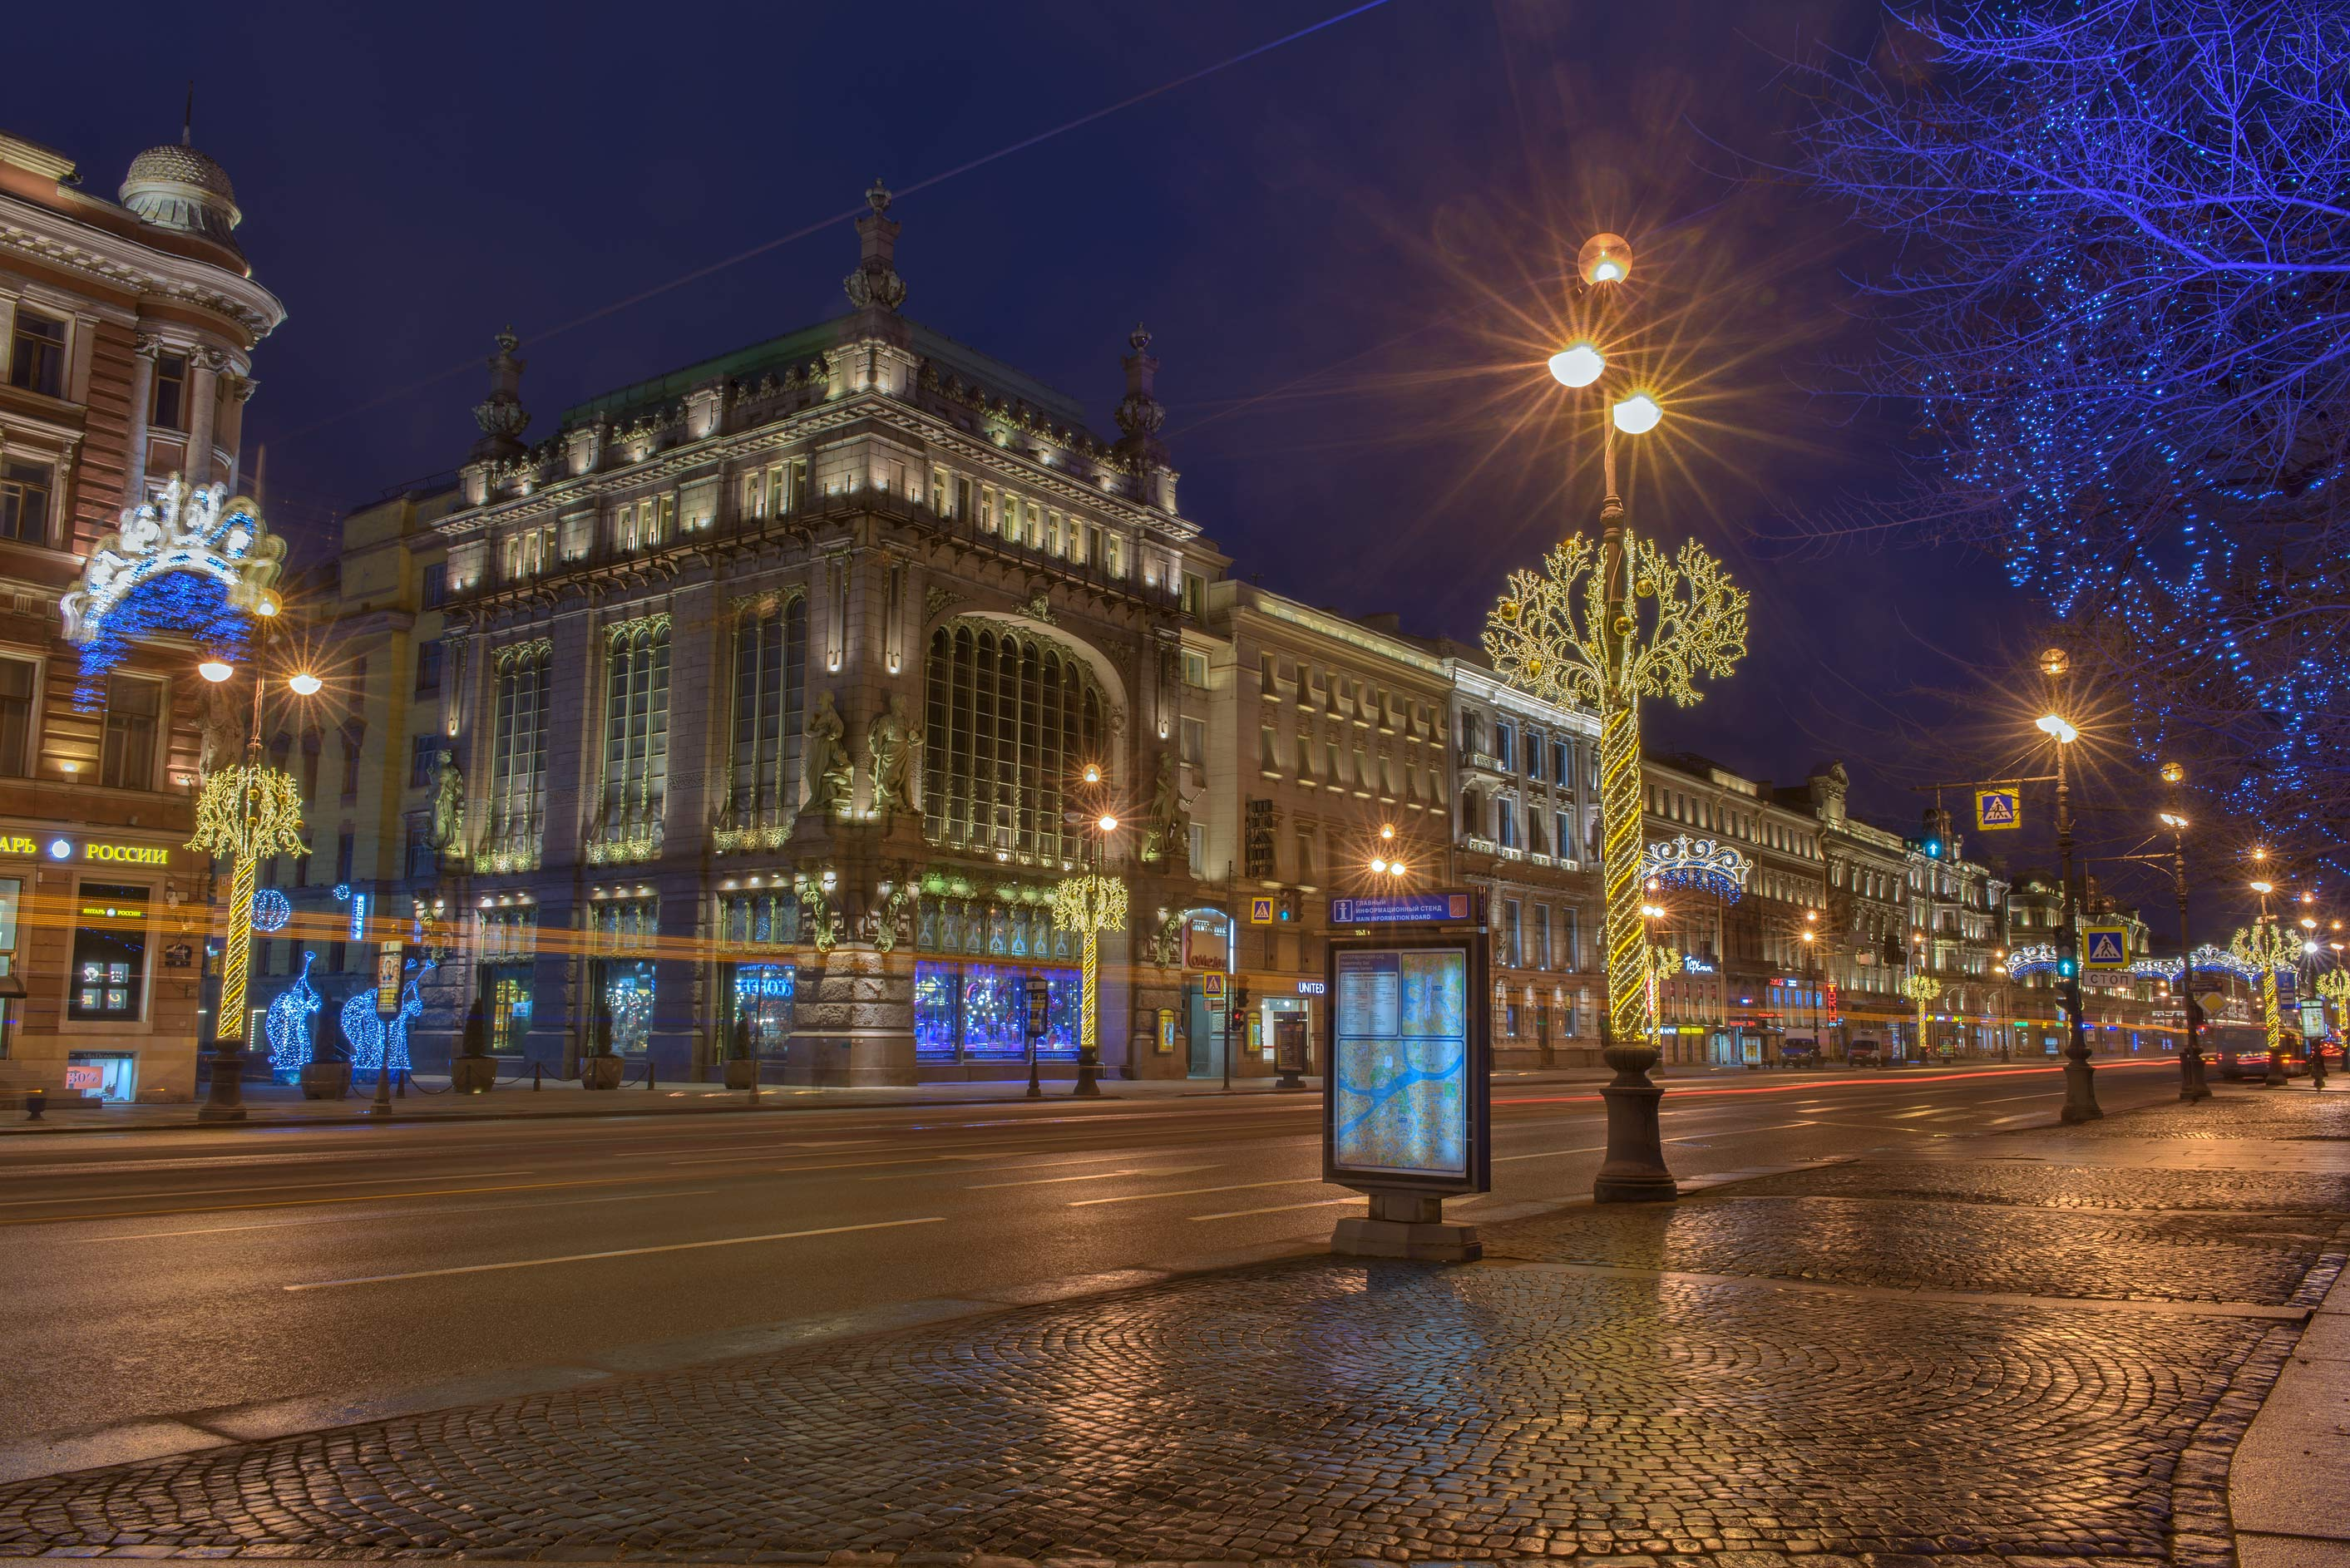 Nevsky Prospect near Ostrovskogo Square at morning. St.Petersburg, Russia